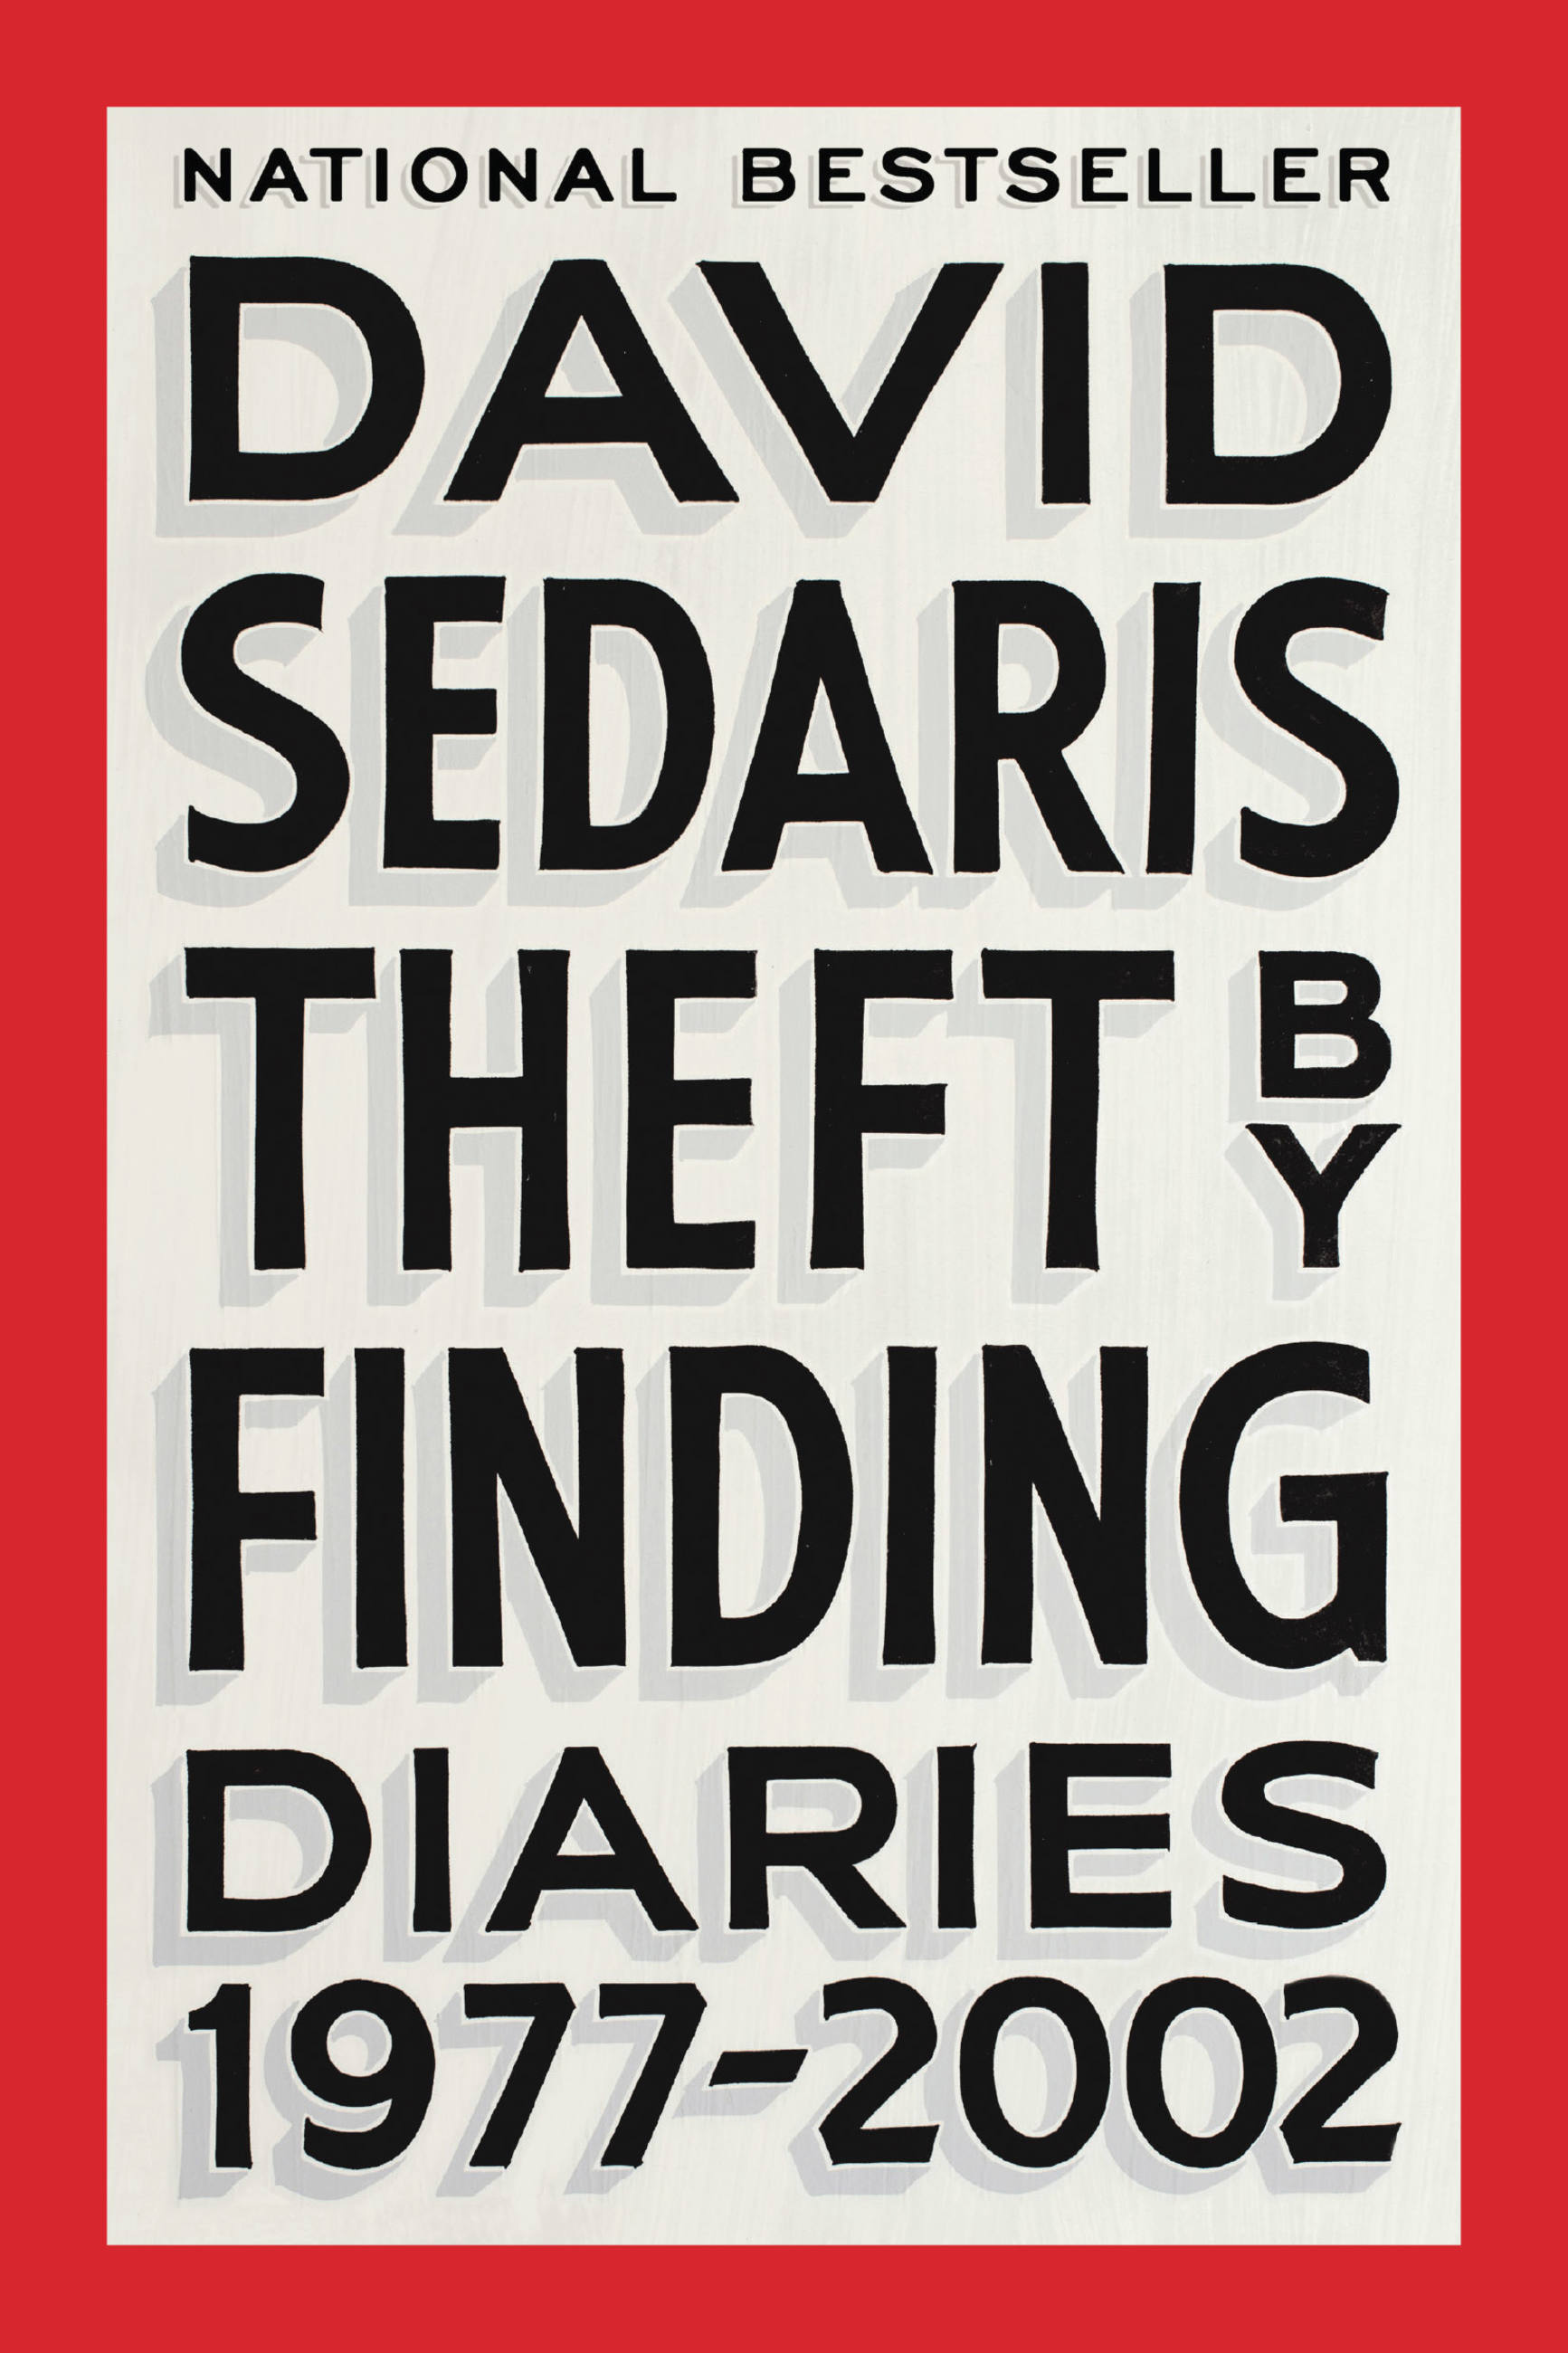 Theft by Finding Diaries (1977-2002)